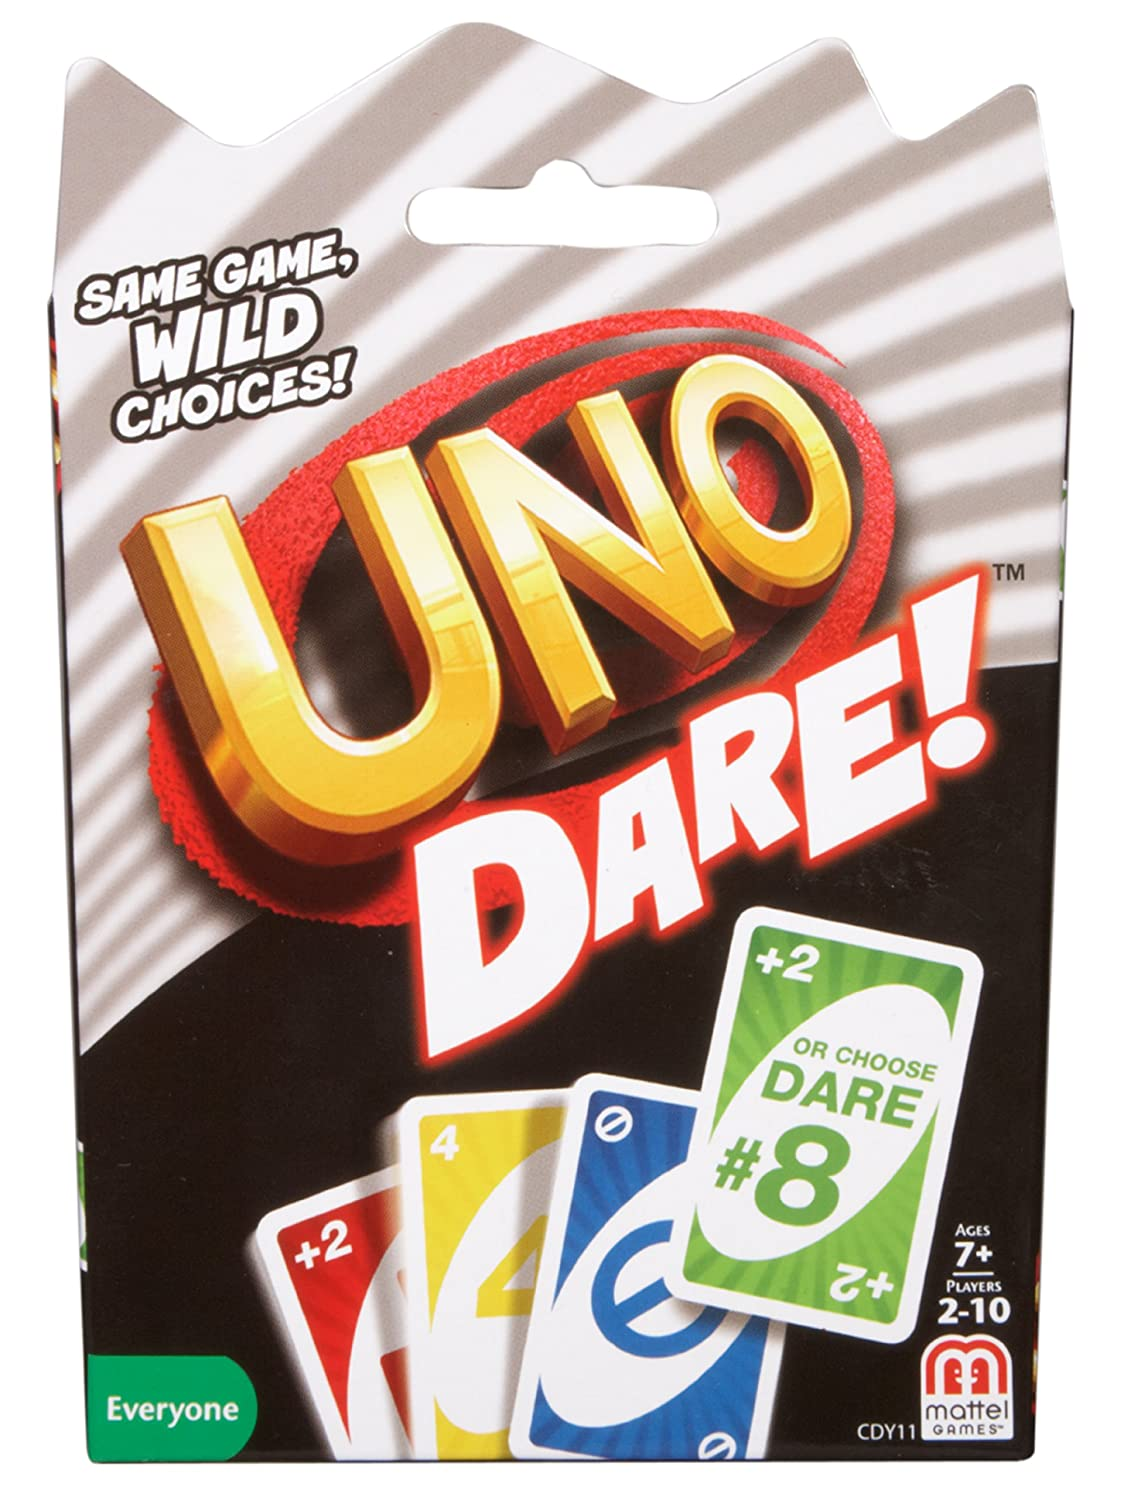 Mattel Games UNO Dare Card Game